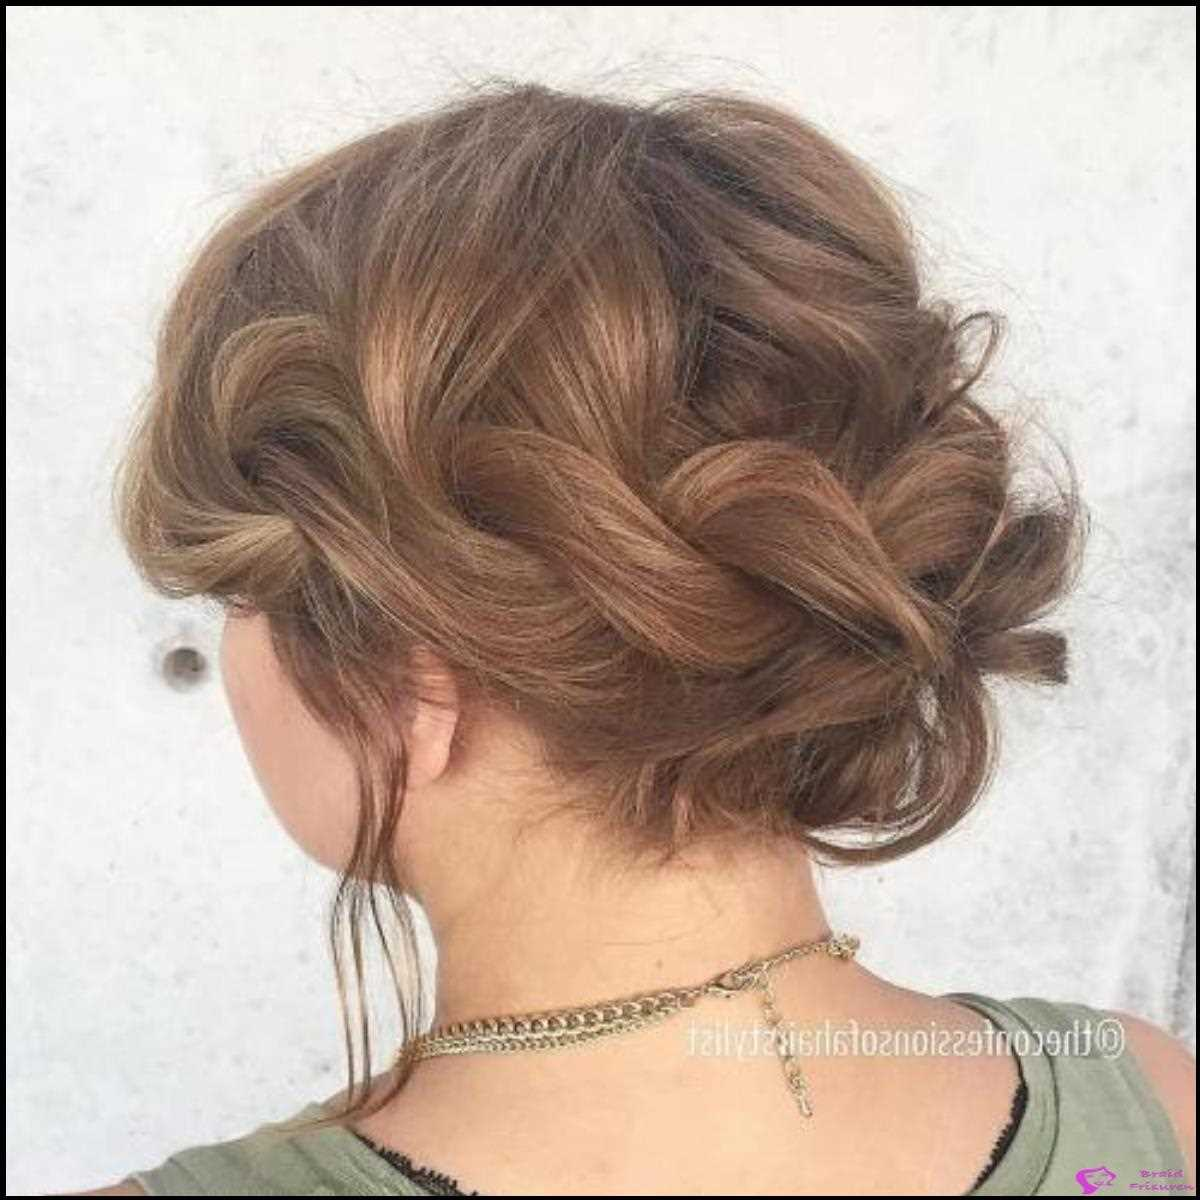 5: Loose Twisted Updo für Prom